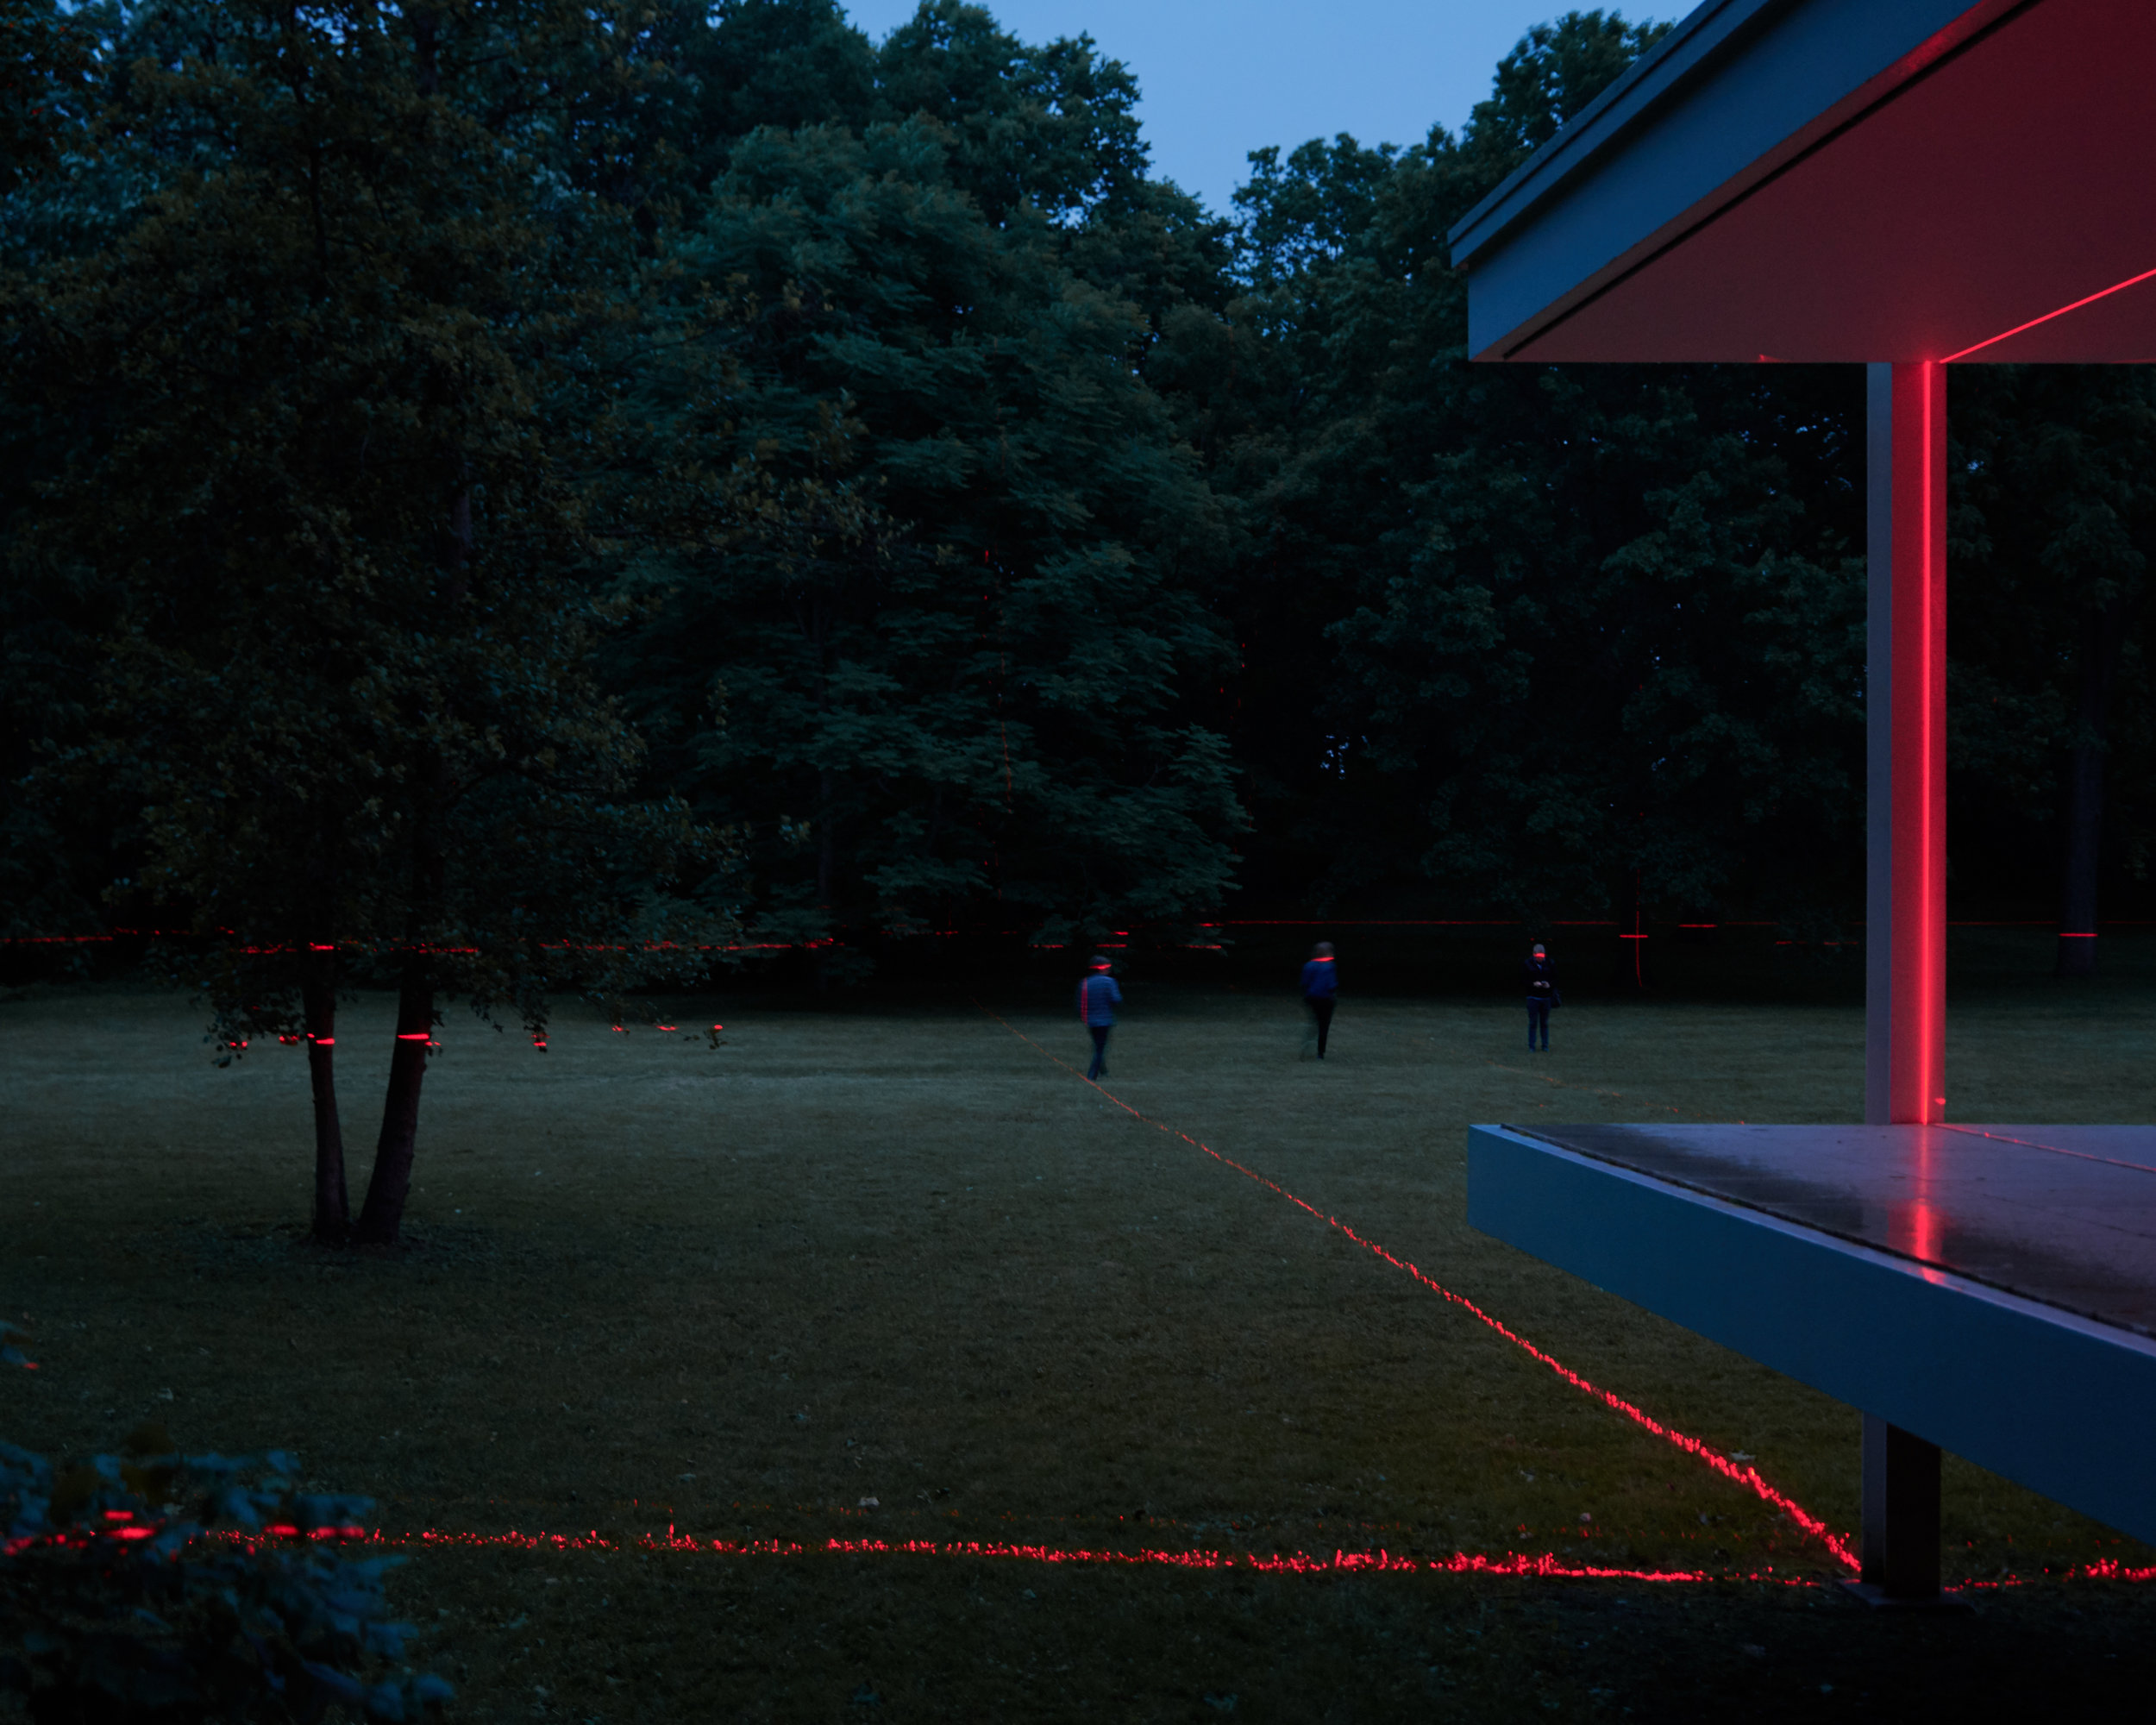 Architecture photography of Luftwerk art installation at Mies van der Rohe's Farnsworth House